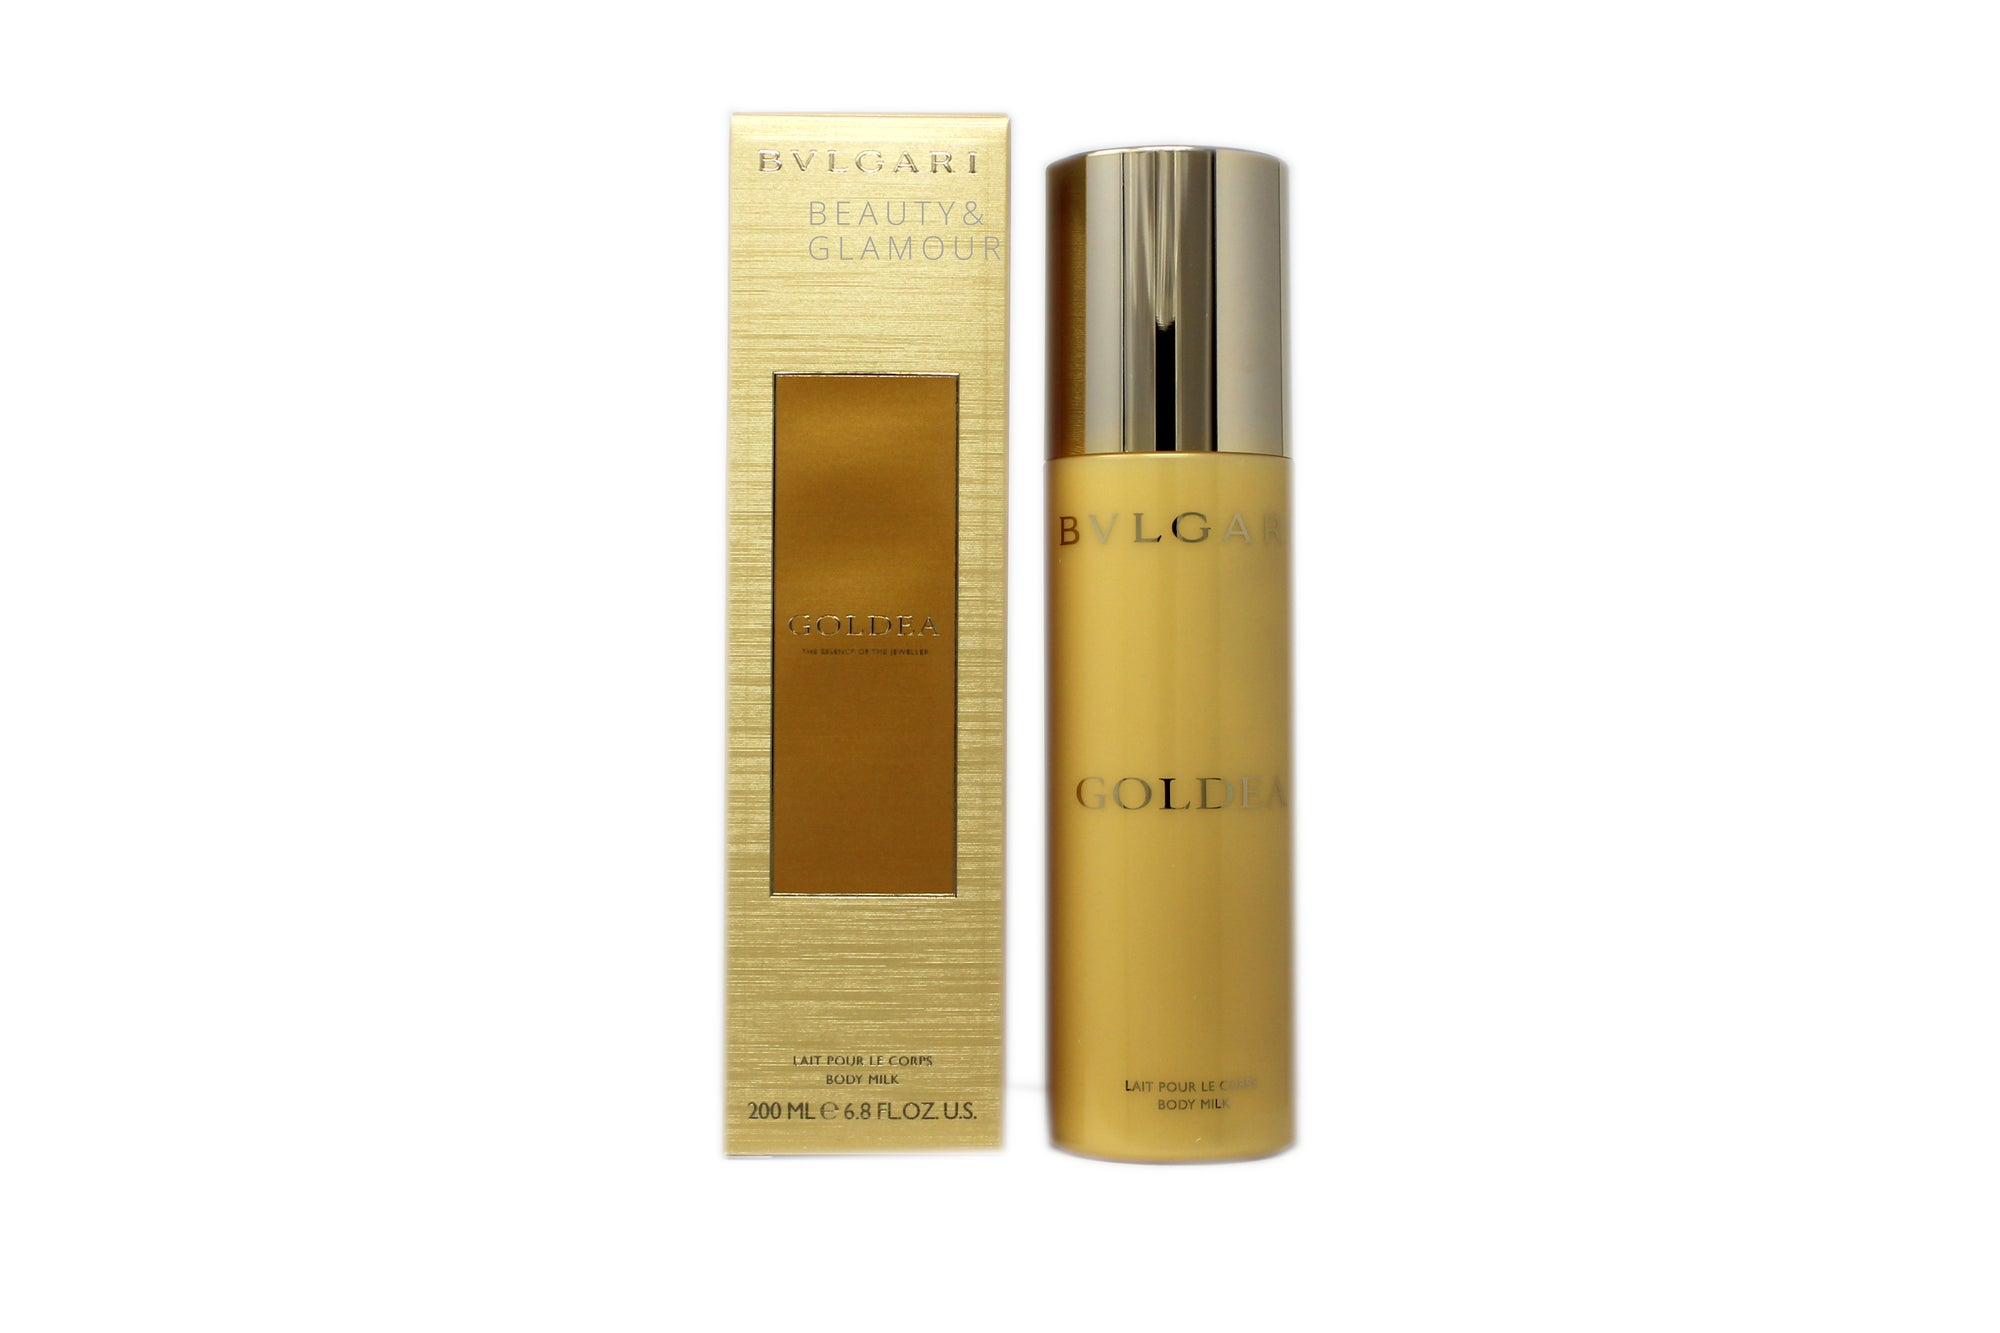 BVLGARI GOLDEA THE ESSENCE OF THE JEWELLER BODY MILK